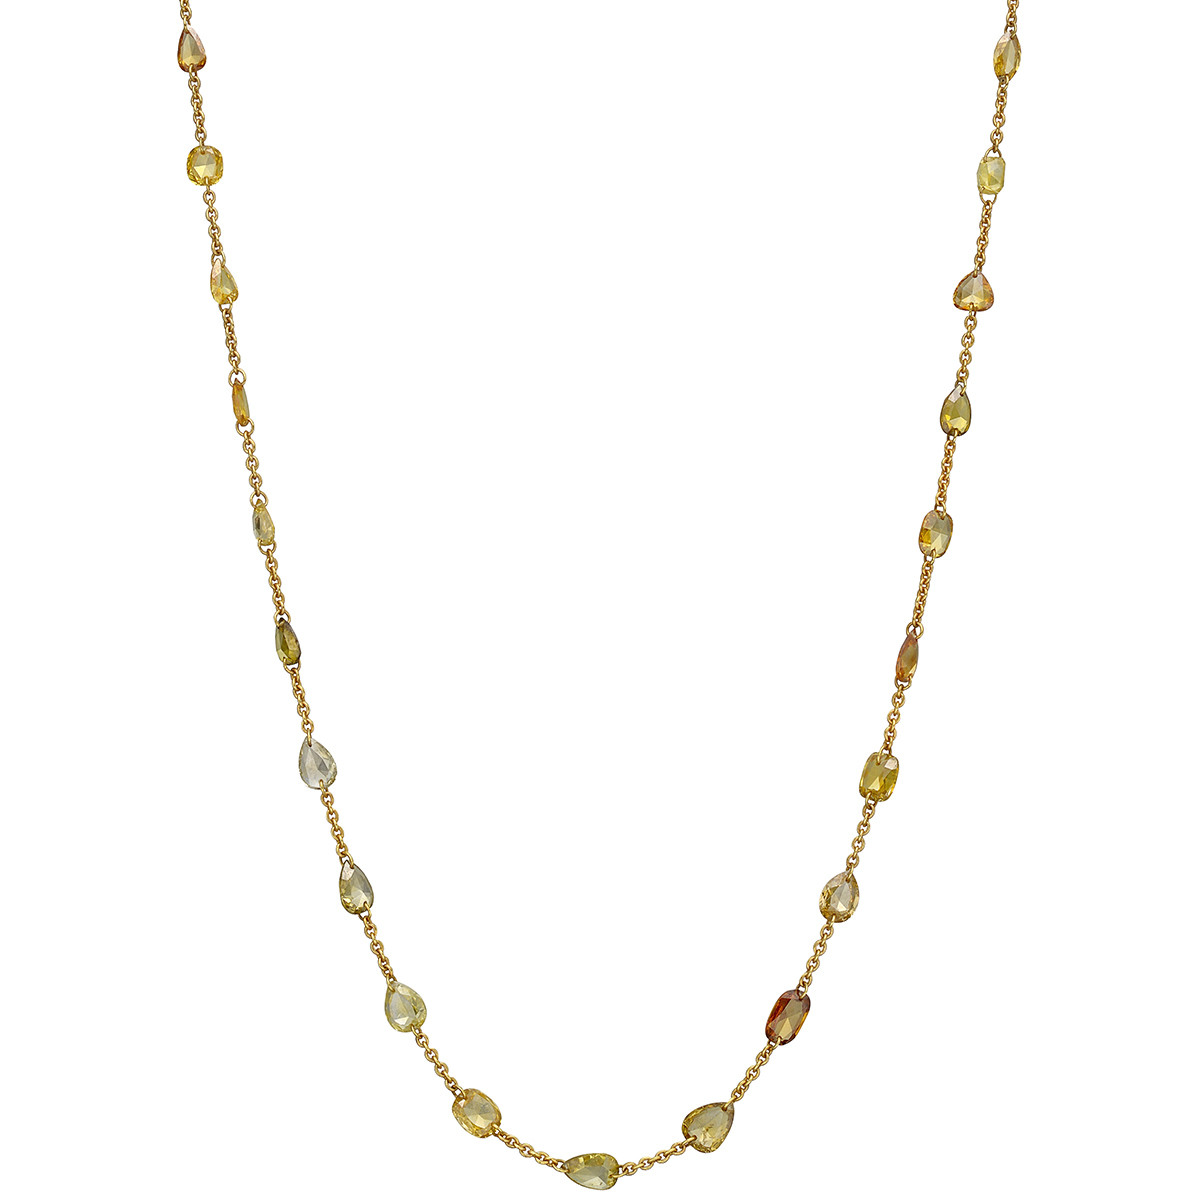 Multicolored Diamond Chain Necklace (4.95 ct tw)